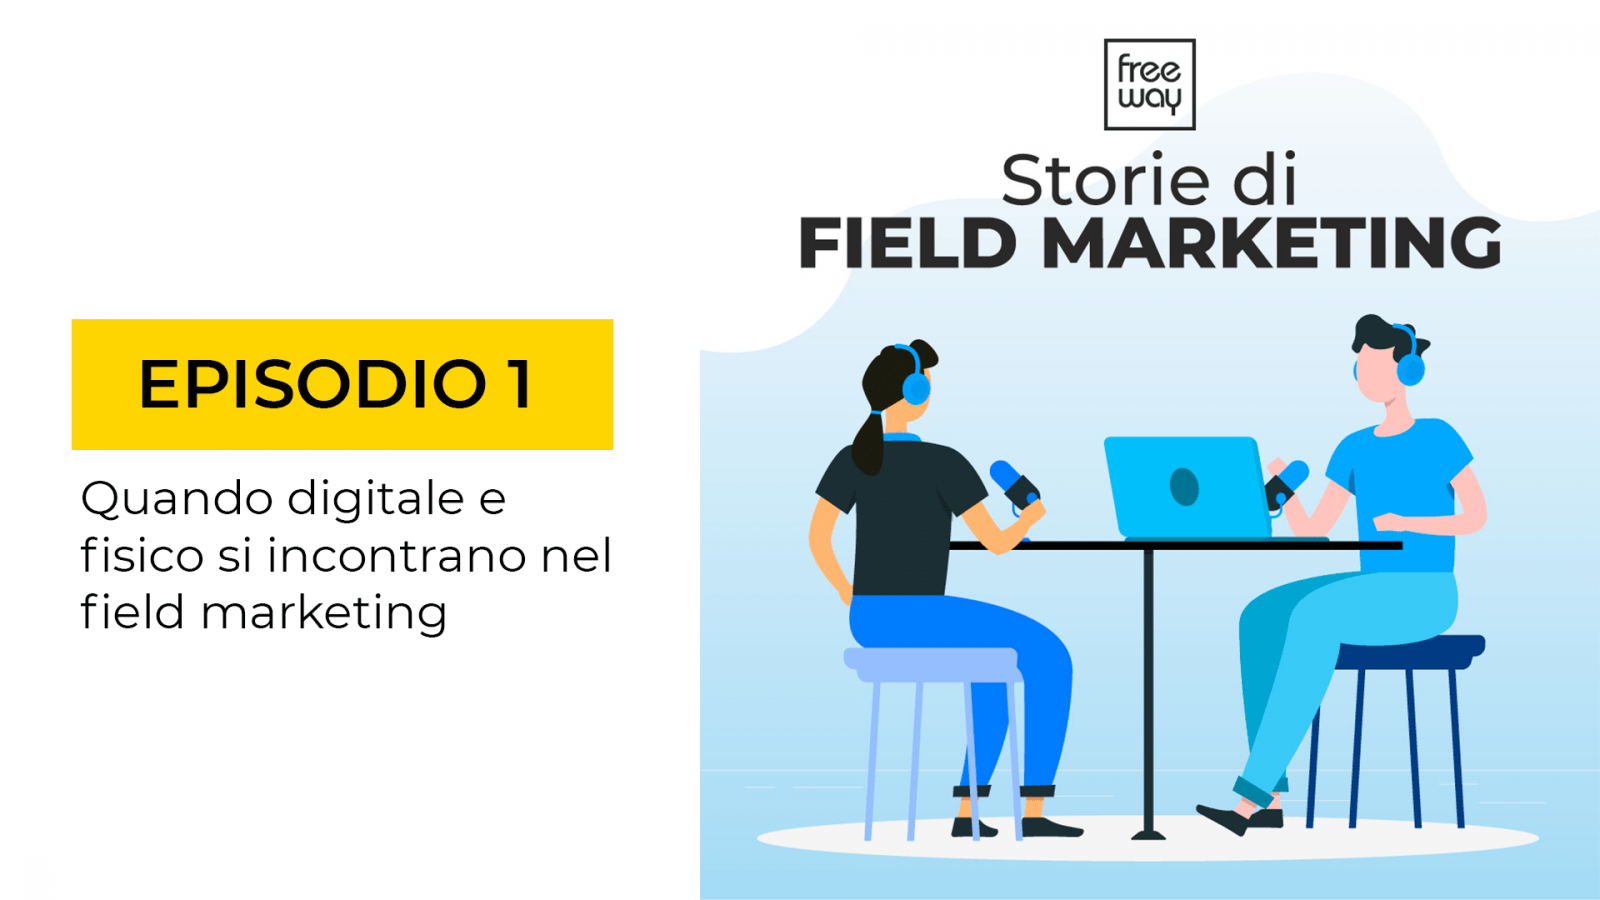 storie di field marketing episodio 1